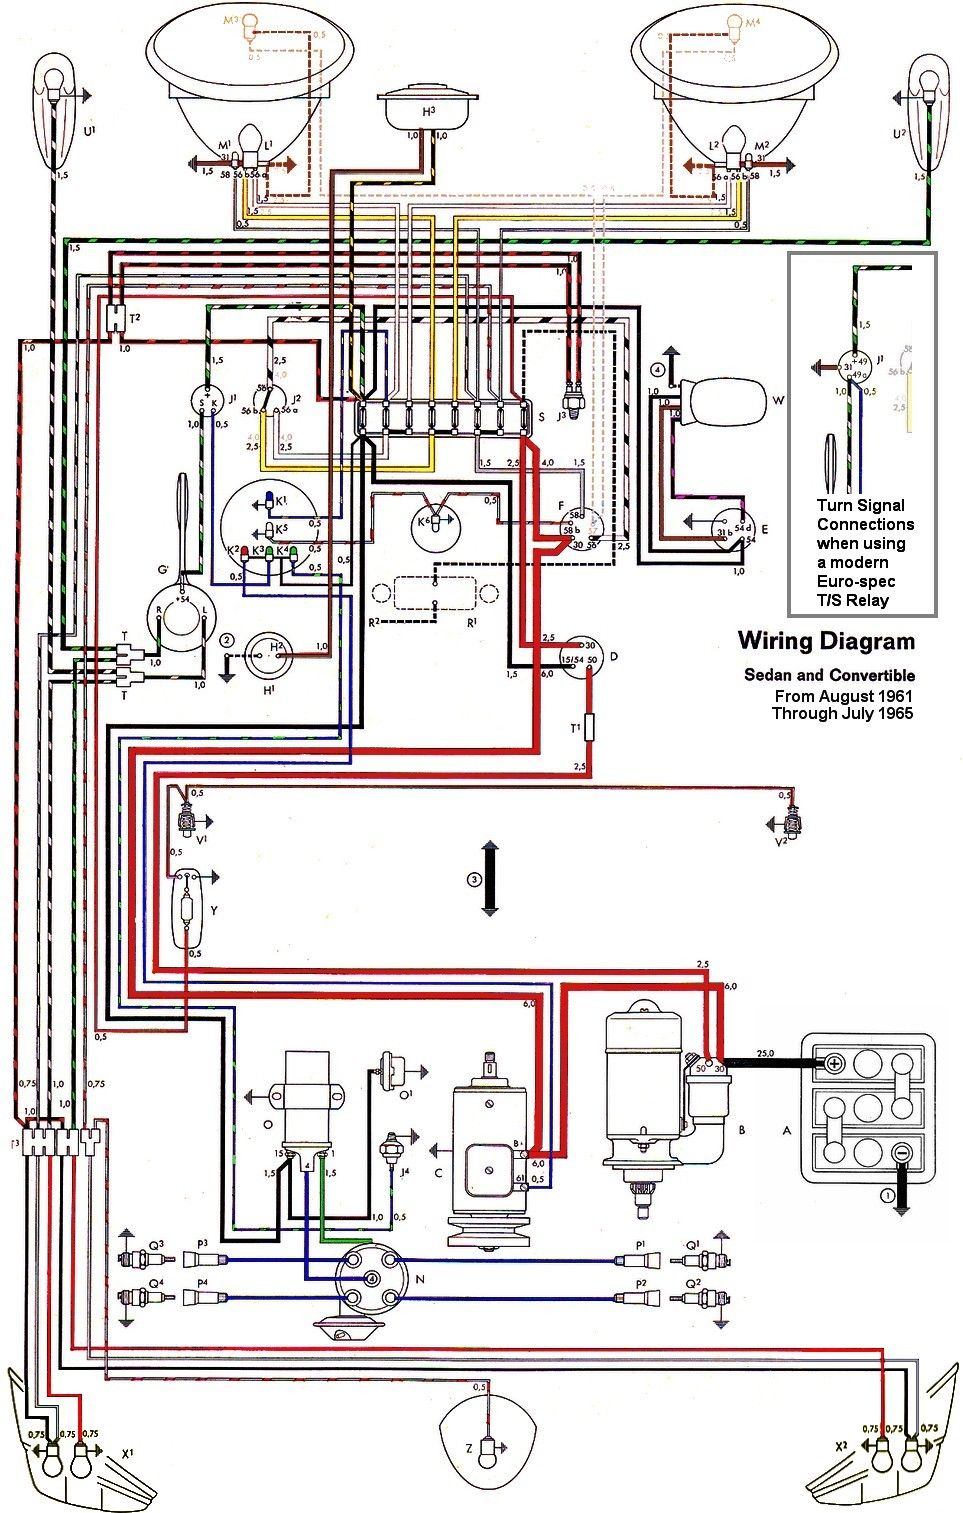 wiring diagram vw beetle sedan and convertible 1961 1965 vwwiring diagram vw beetle sedan and convertible 1961 1965